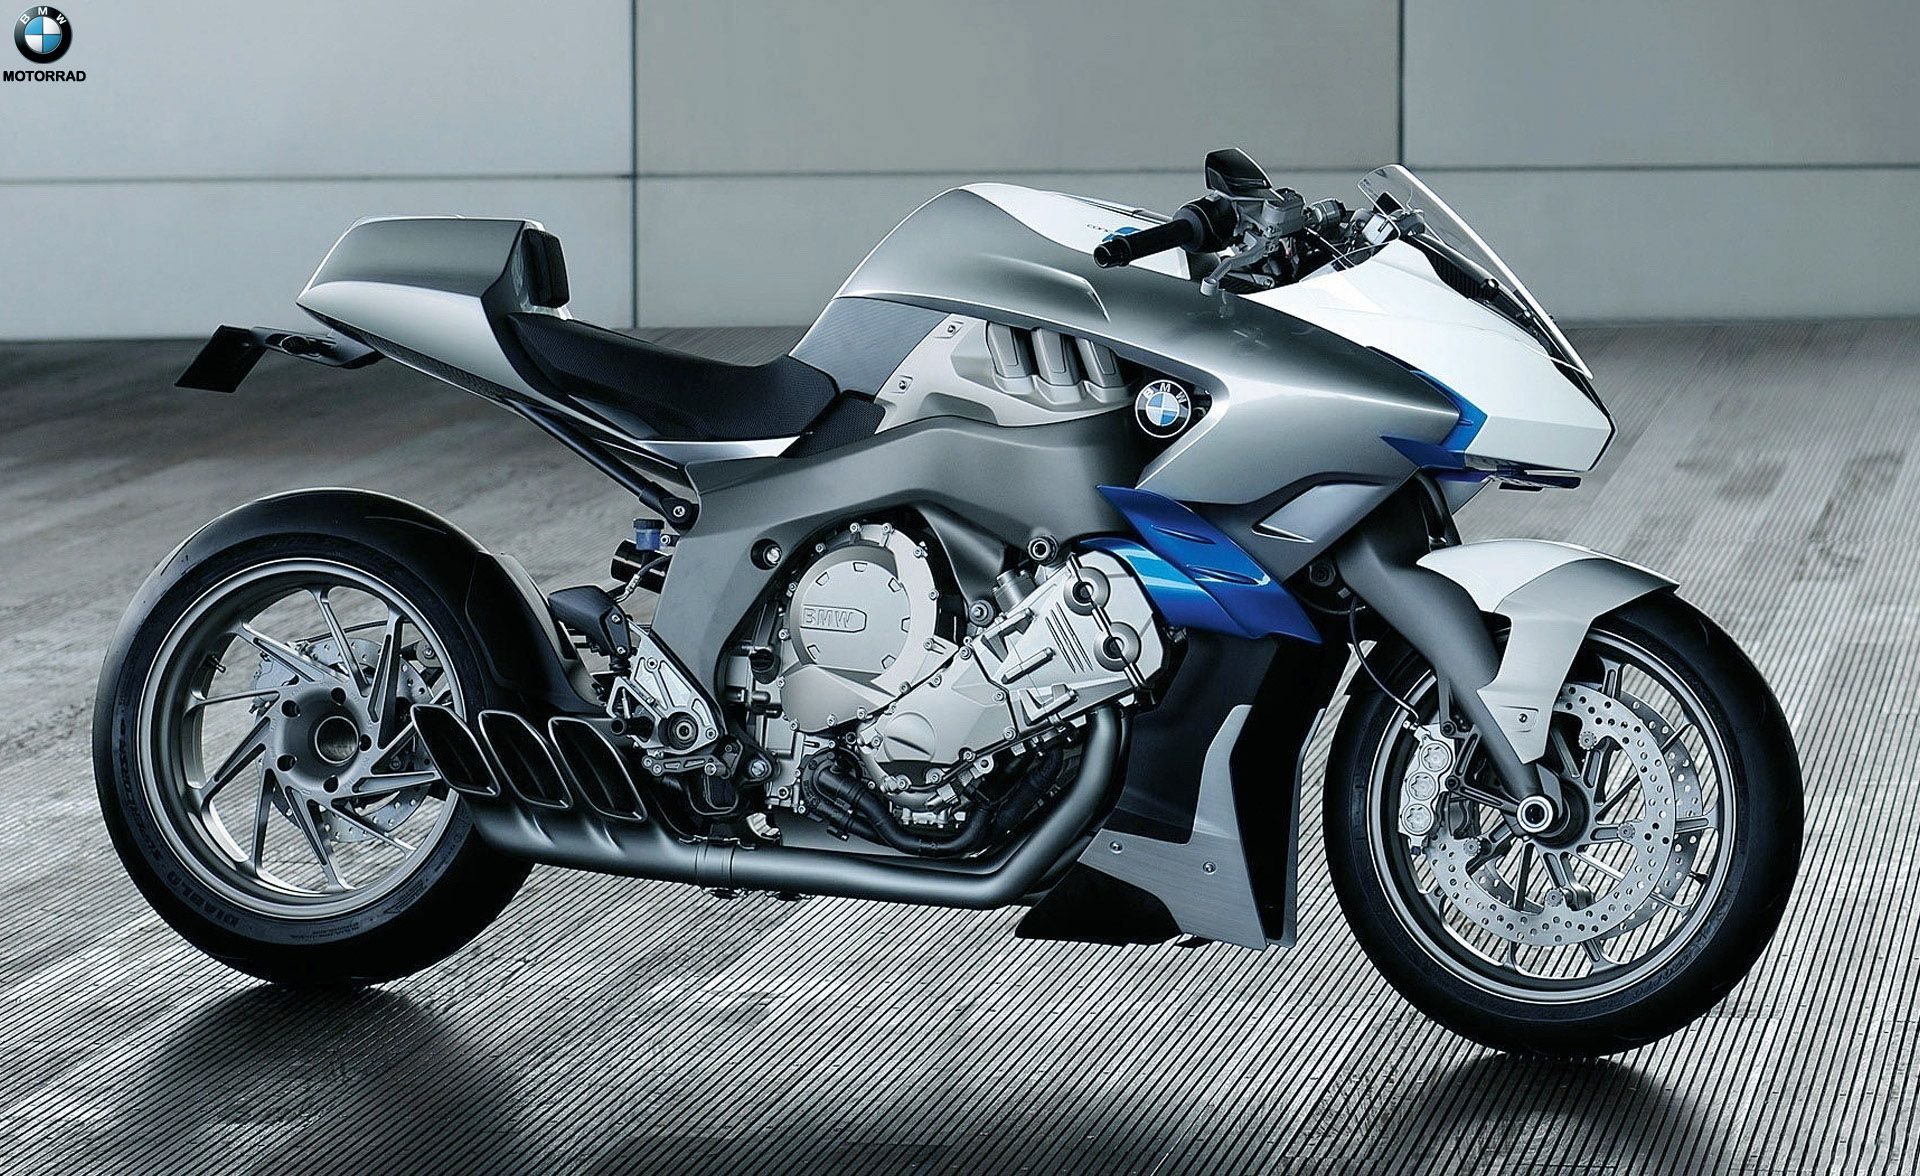 Bmw Motorrad Gorgeous Look Hd Wallpaper Latest Wallpaper Images